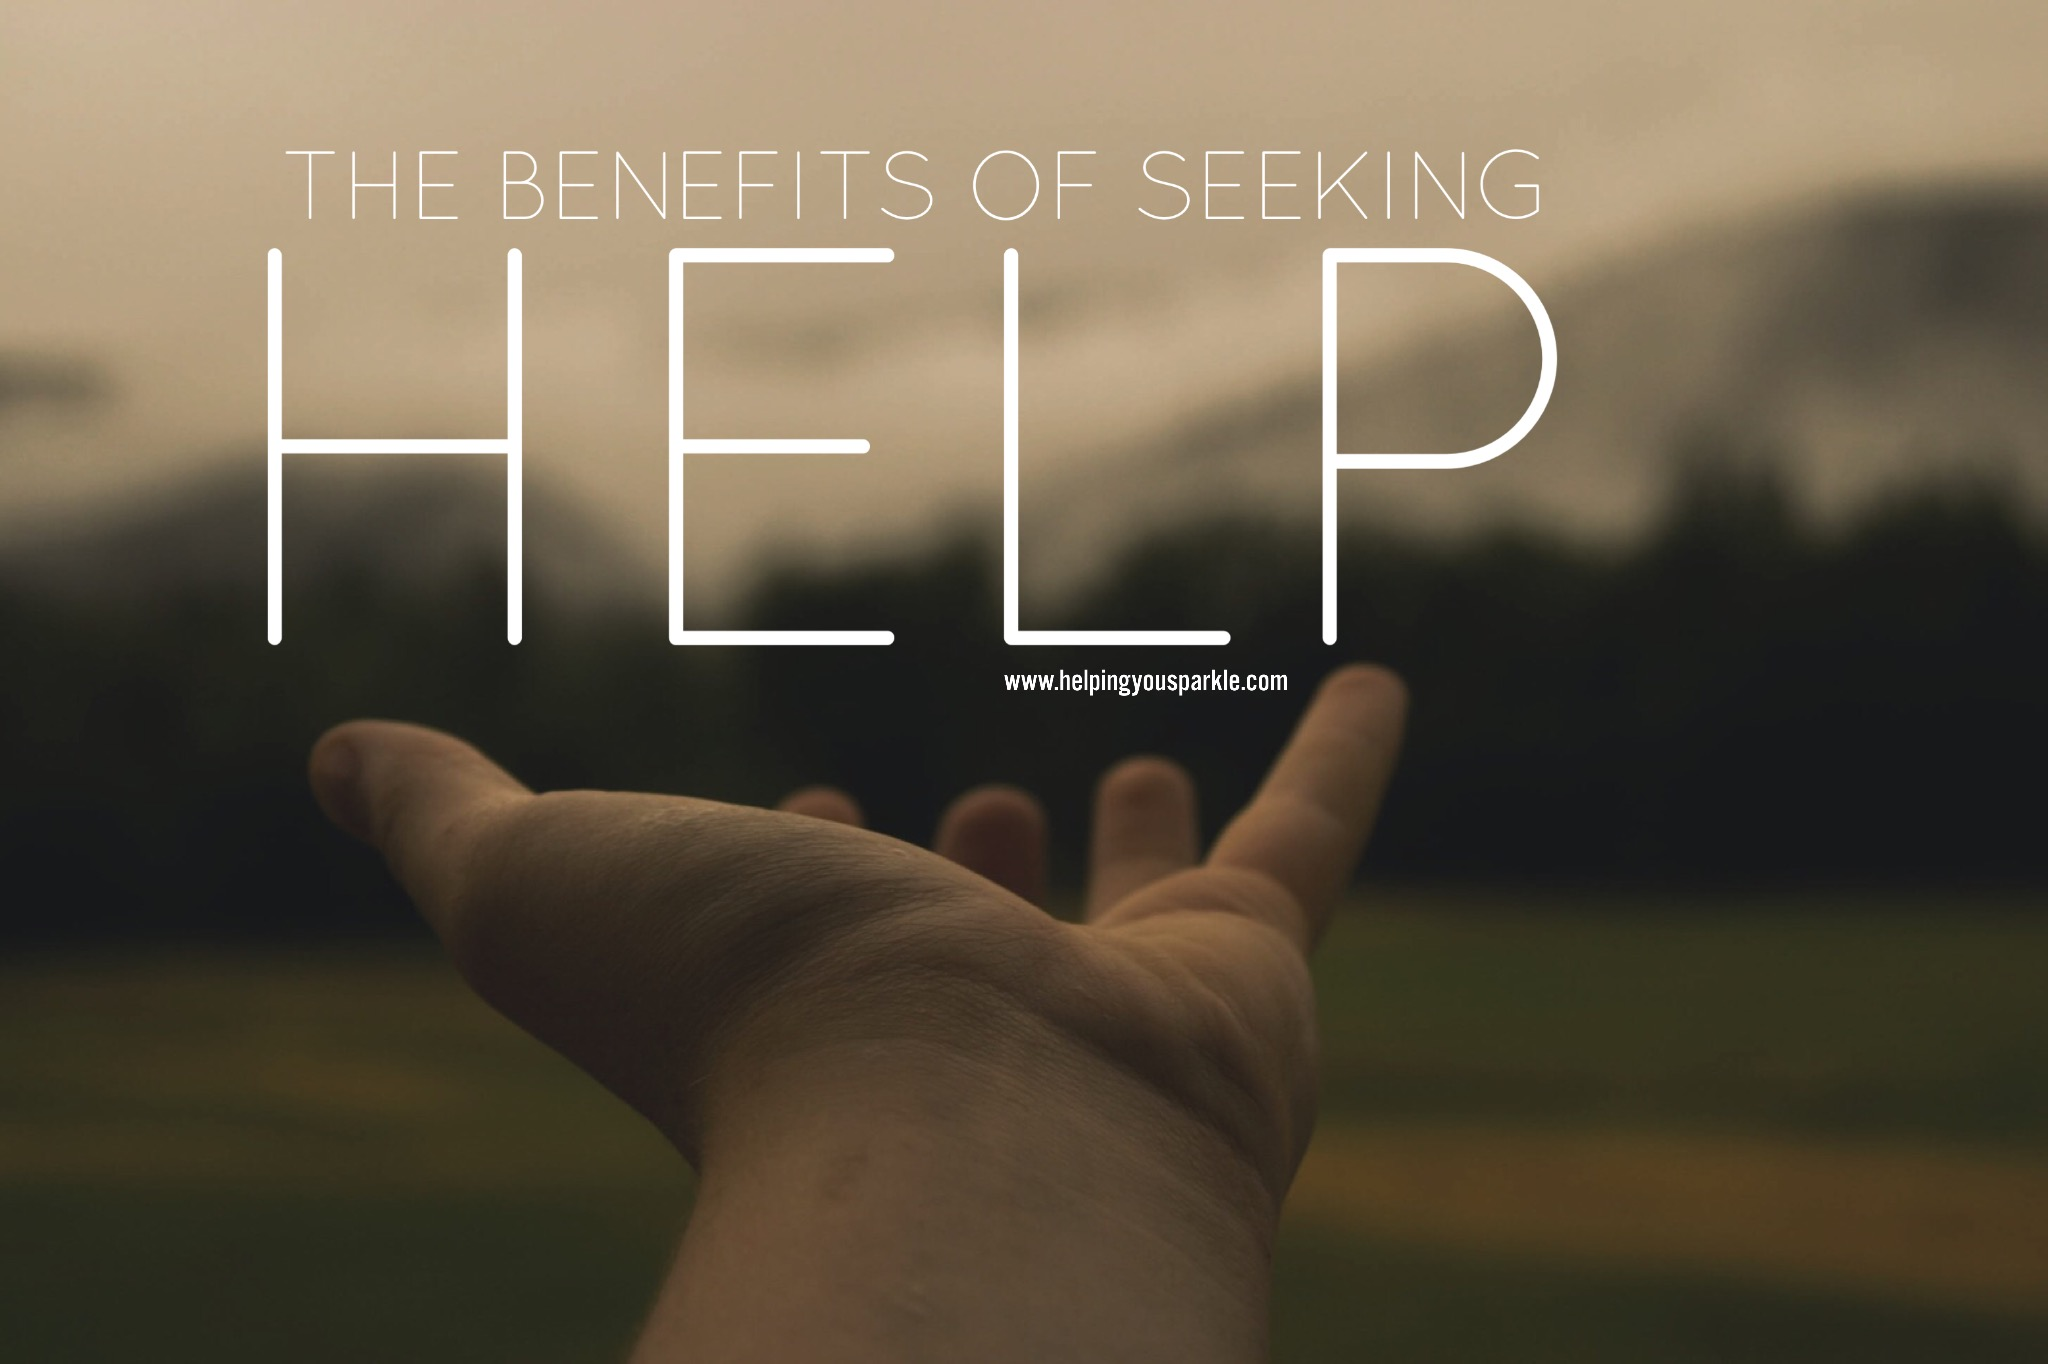 Why does your wellness matter? The benefits of seeking help